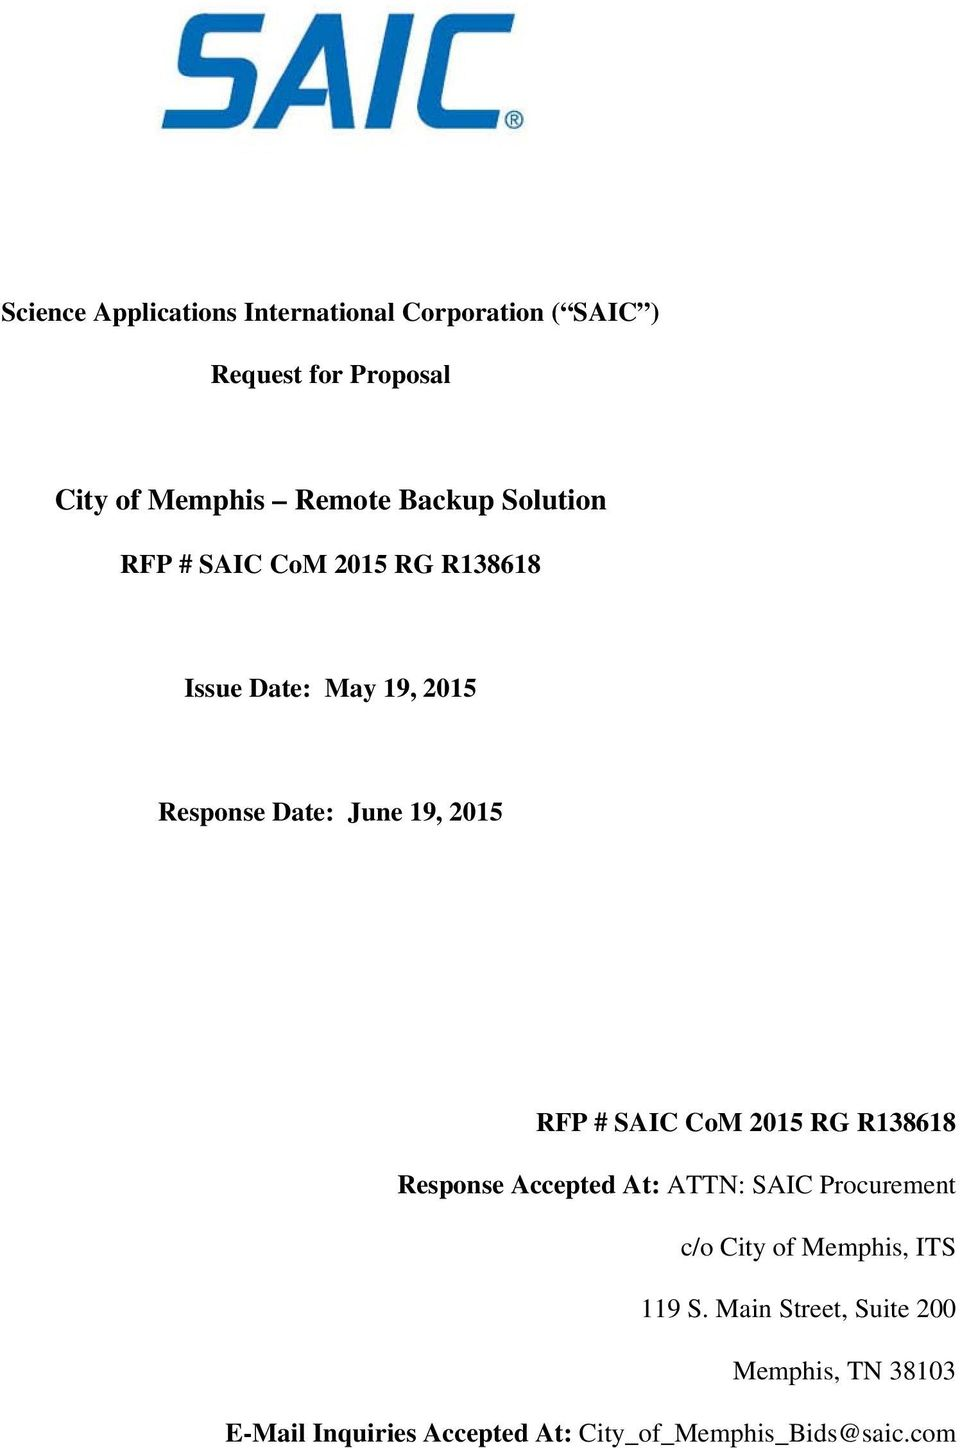 RFP # SAIC CoM 2015 RG R138618 Response Accepted At: ATTN: SAIC Procurement c/o City of Memphis, ITS